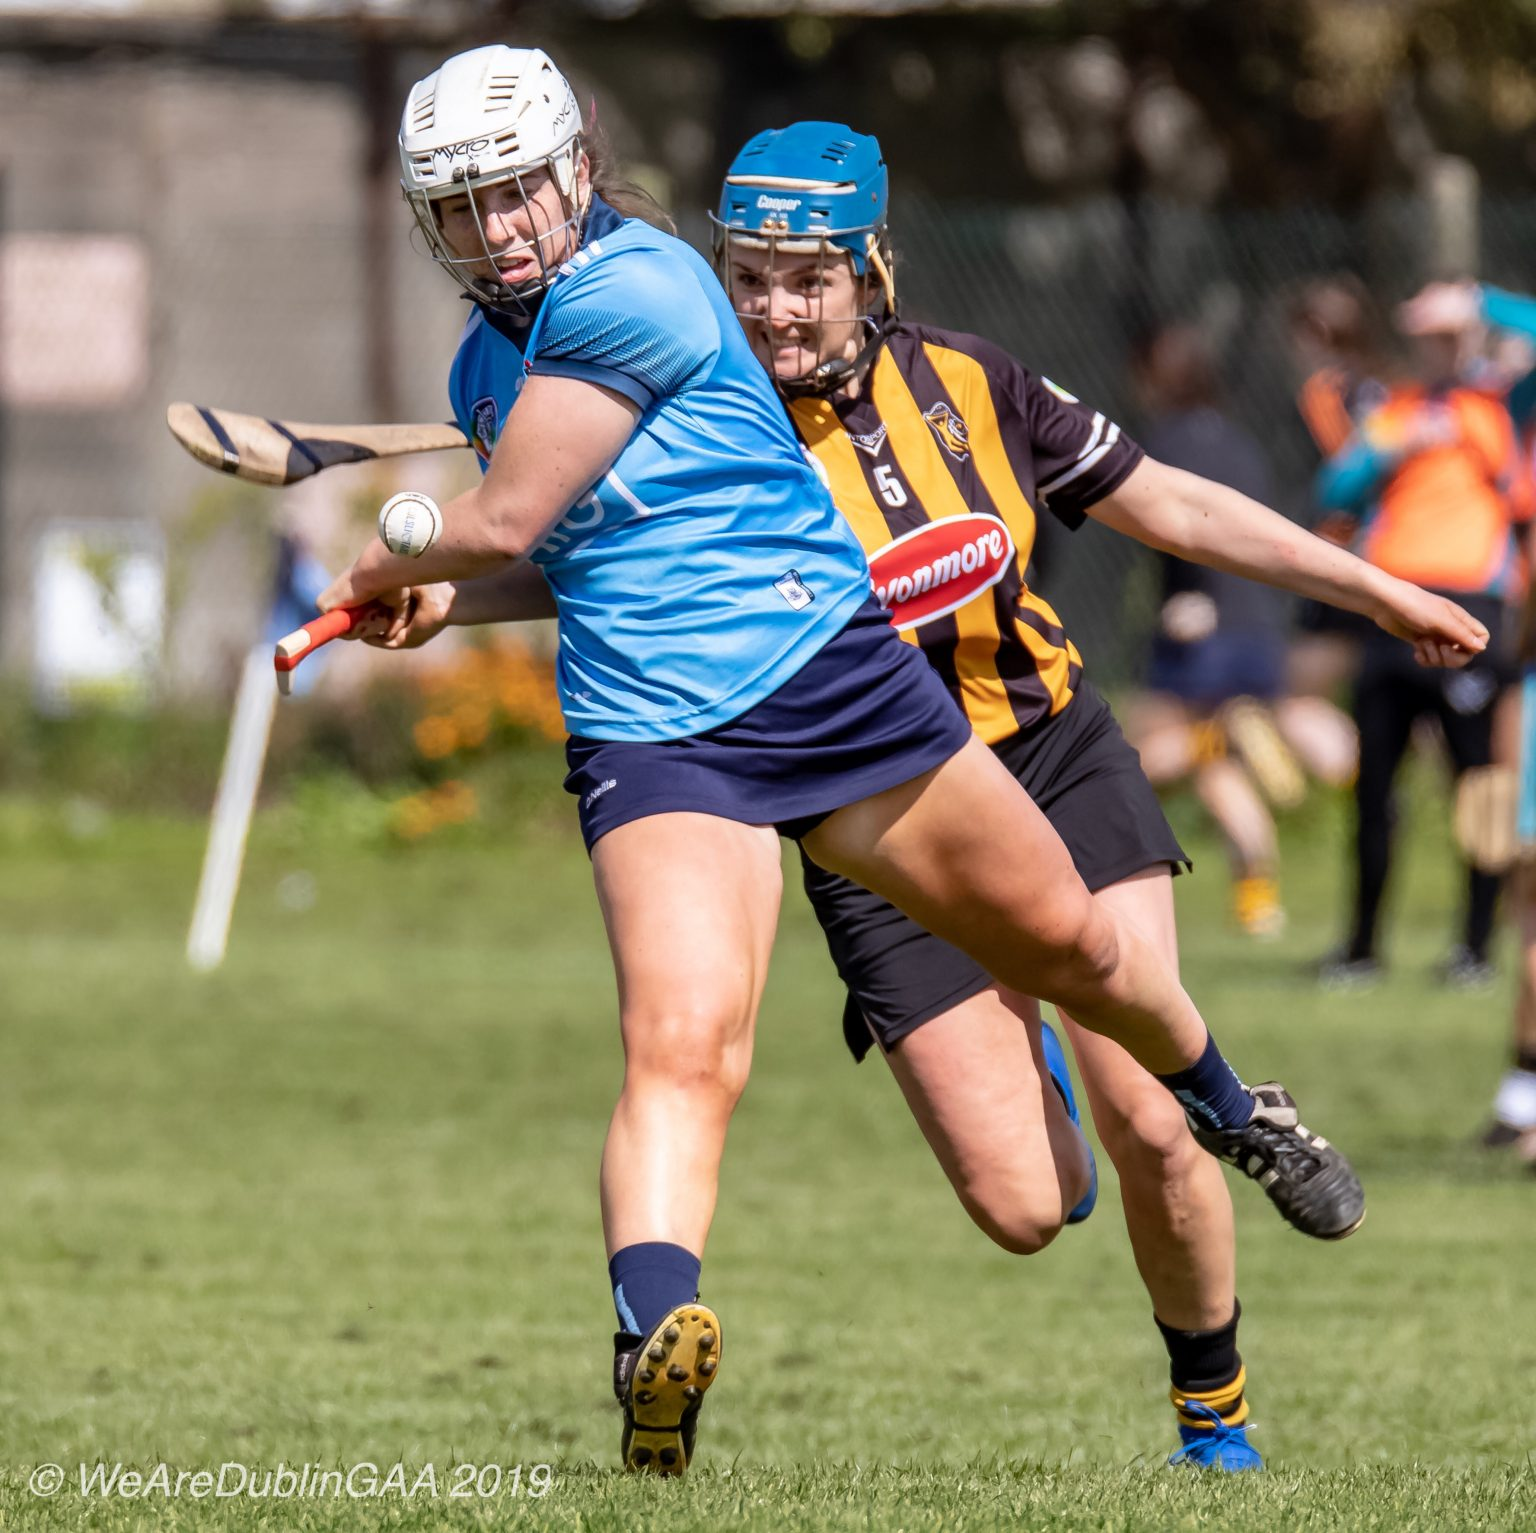 Dublin Camogie player strikes the ball just before she is hooked by a Kilkenny player in the Leinster Senior Camogie Quarter Final